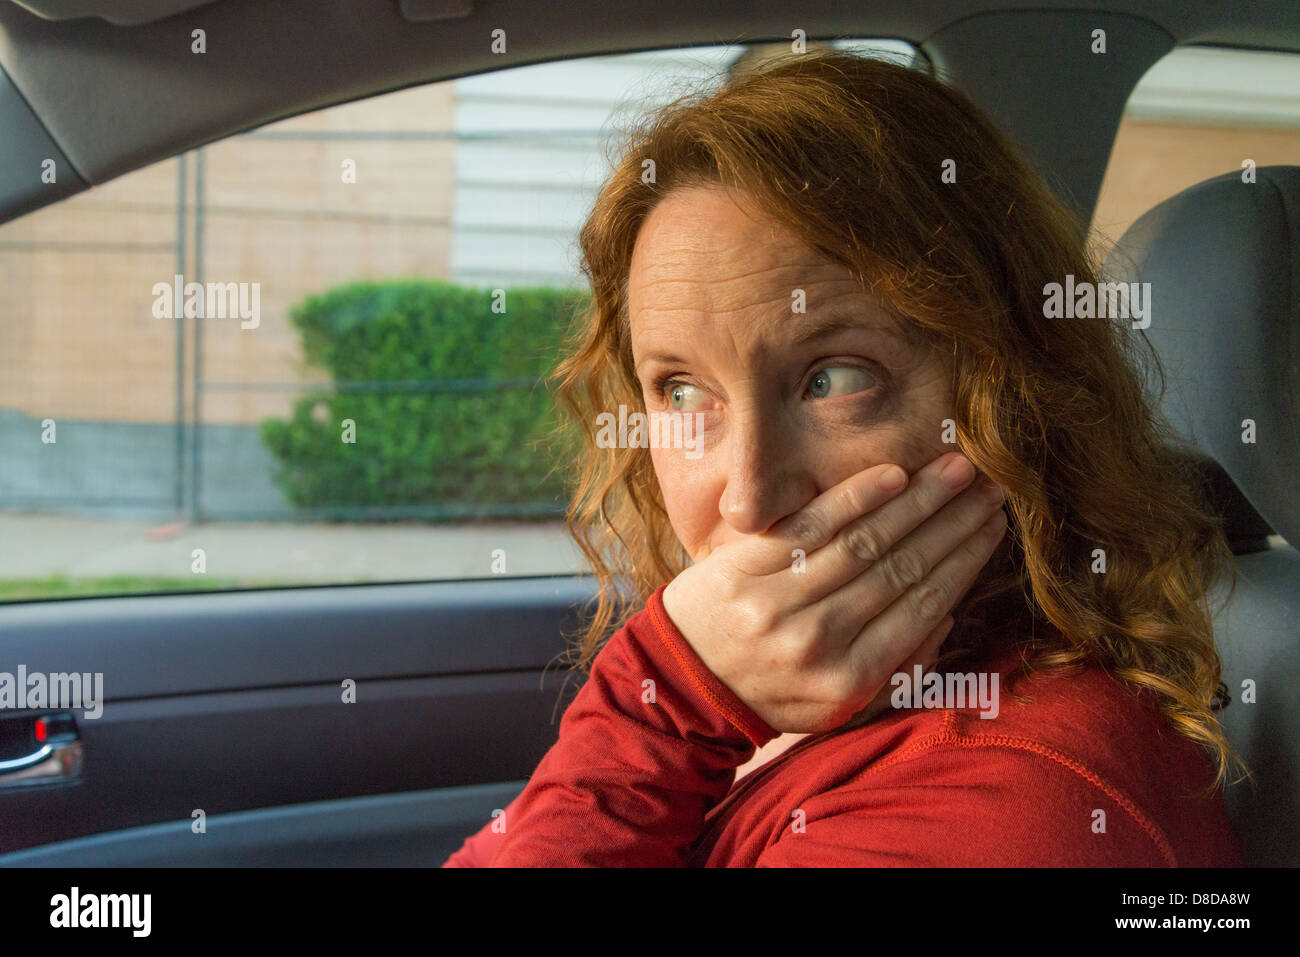 Embarrassed woman's expression after car incident - Stock Image